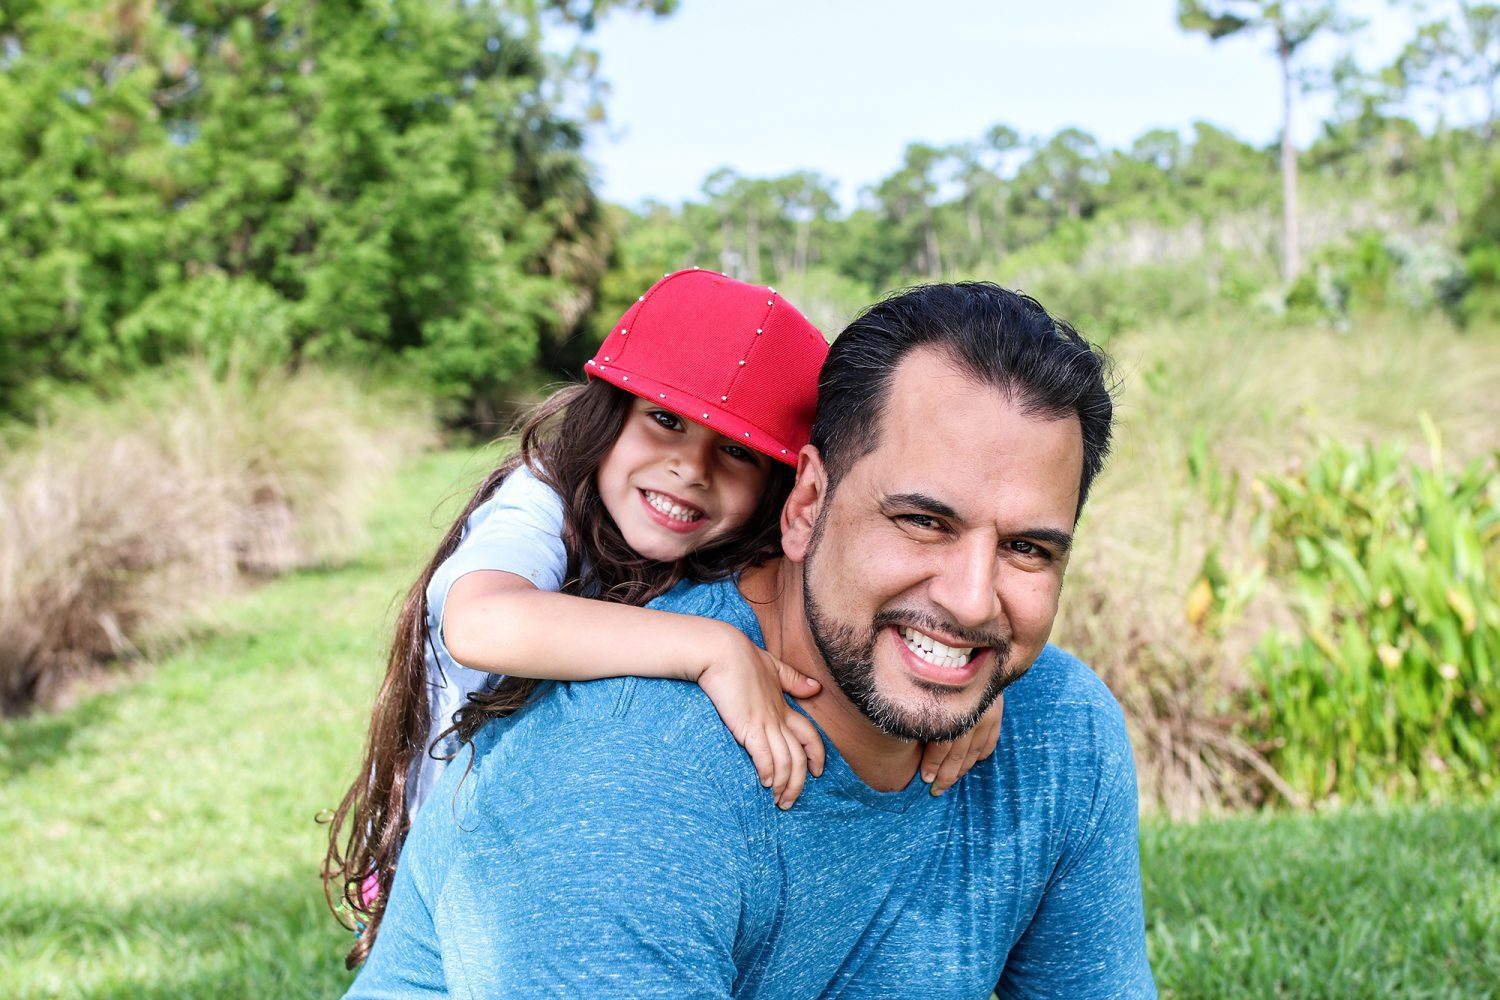 SmileDirectClub, smile direct, aligners, teeth, straight teeth, mommy blog, mom blogger, family blog, family influencer, instagram, mother, father, tween blog, dad blog, United States, 2018, mom blog, top, best, mommy blogger, daddy blog, tween blogger, child brand influencer, the super mom life, dad blog, dad blogger